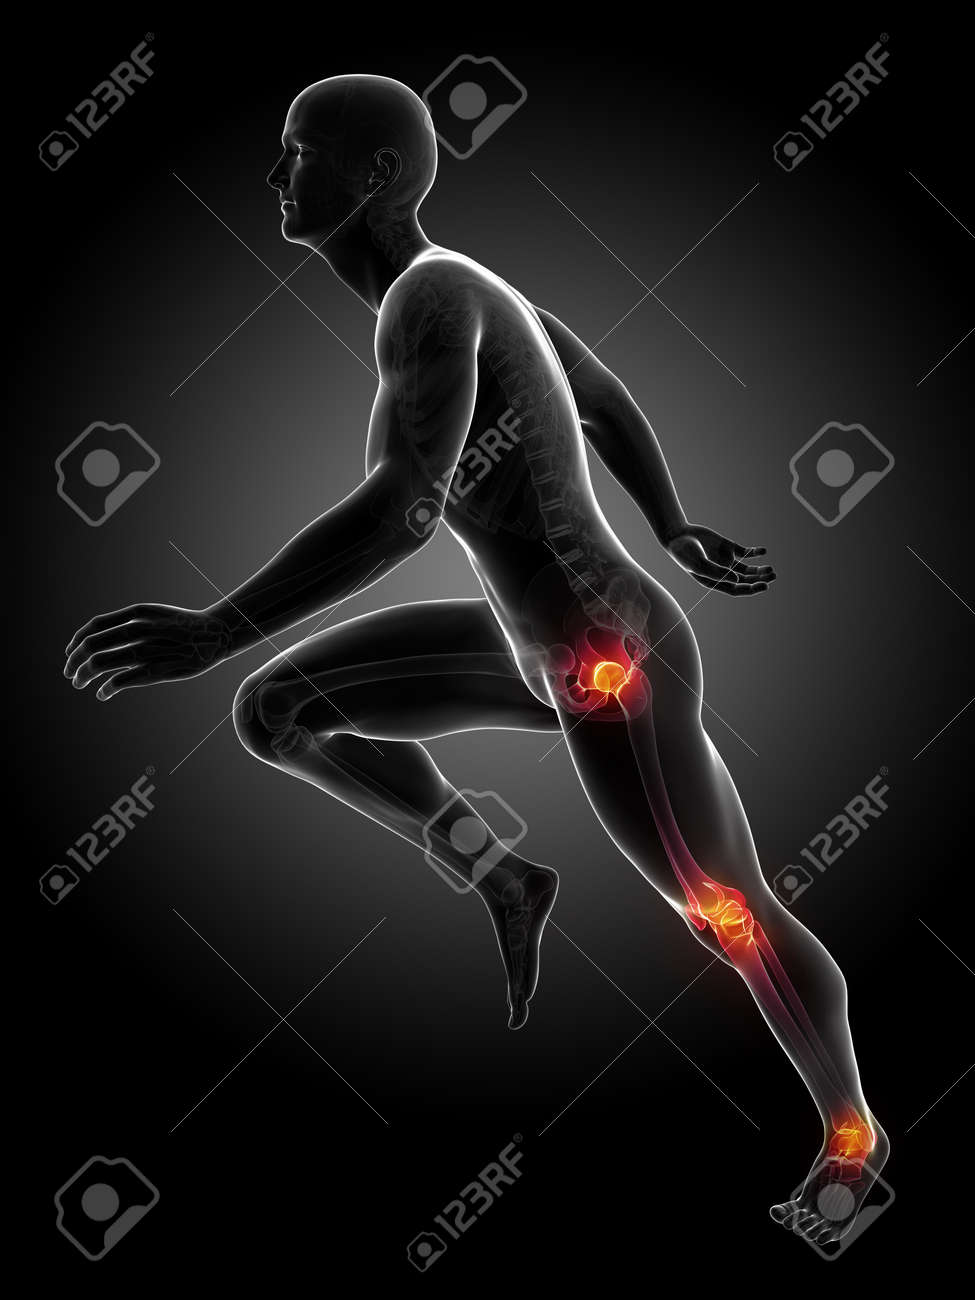 3d rendered illustration - runners joints Stock Photo - 18070642